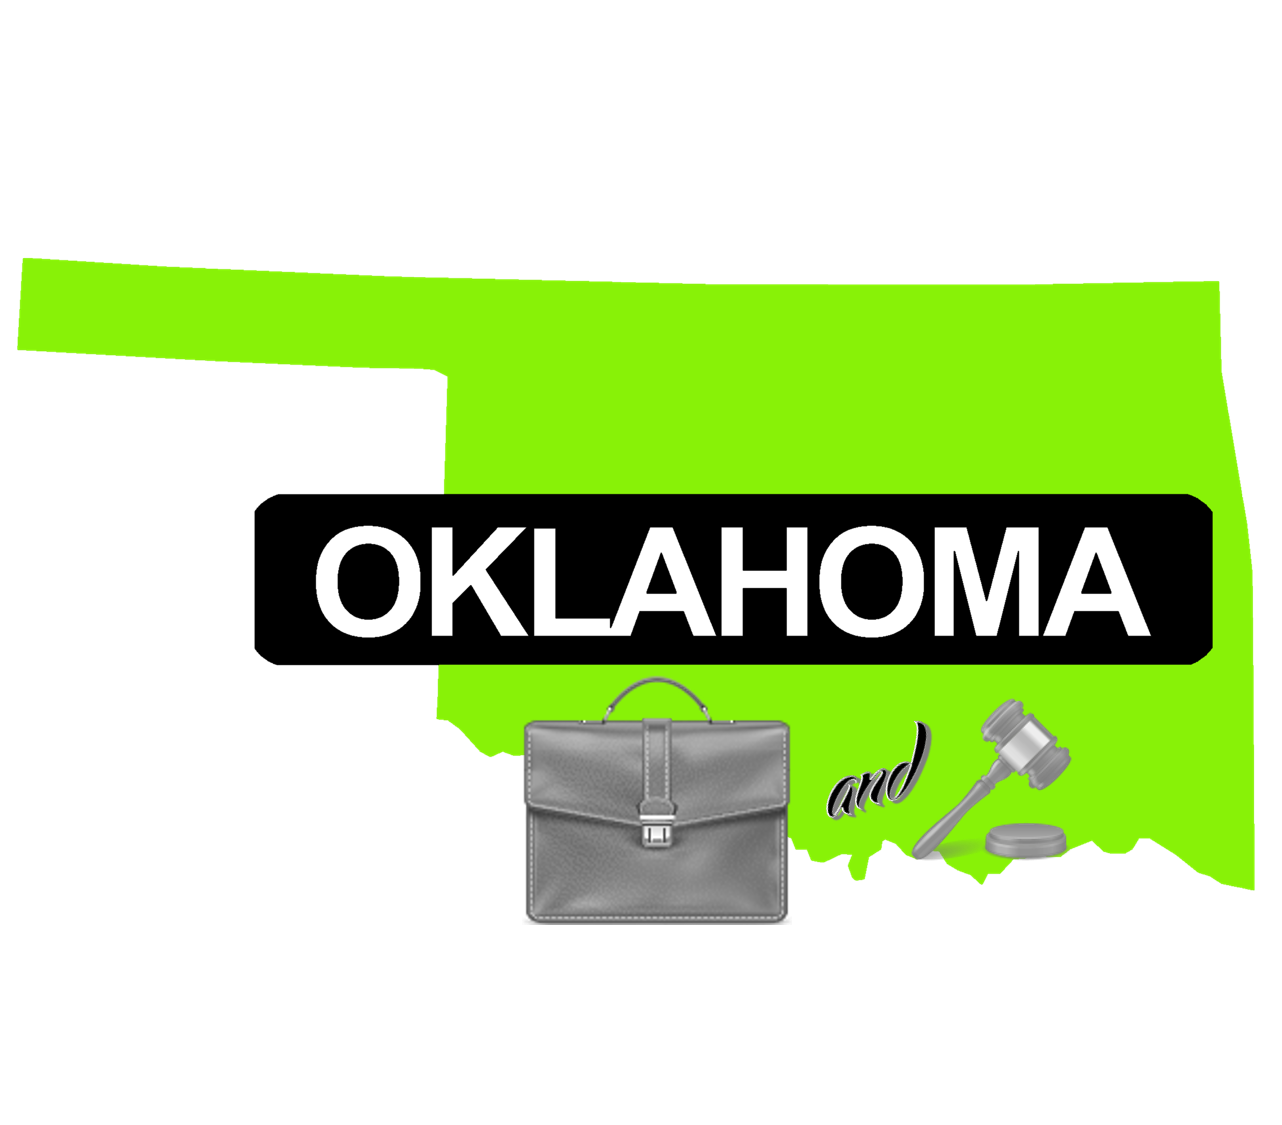 oklahoma business  law practice questions  cc oklahoma business and law practice questions